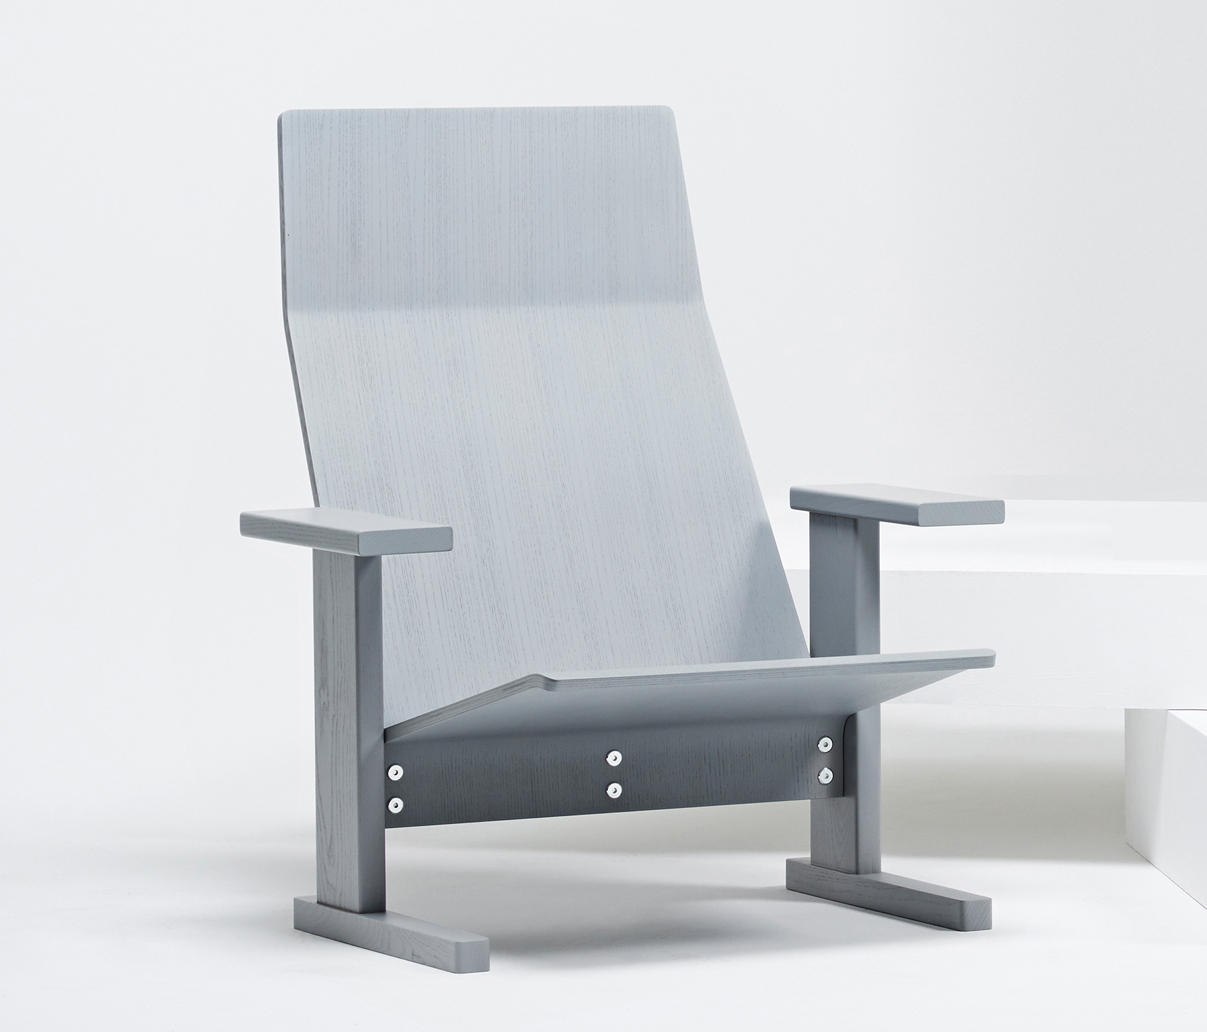 Quindici Lounge Chair by Mattiazzi